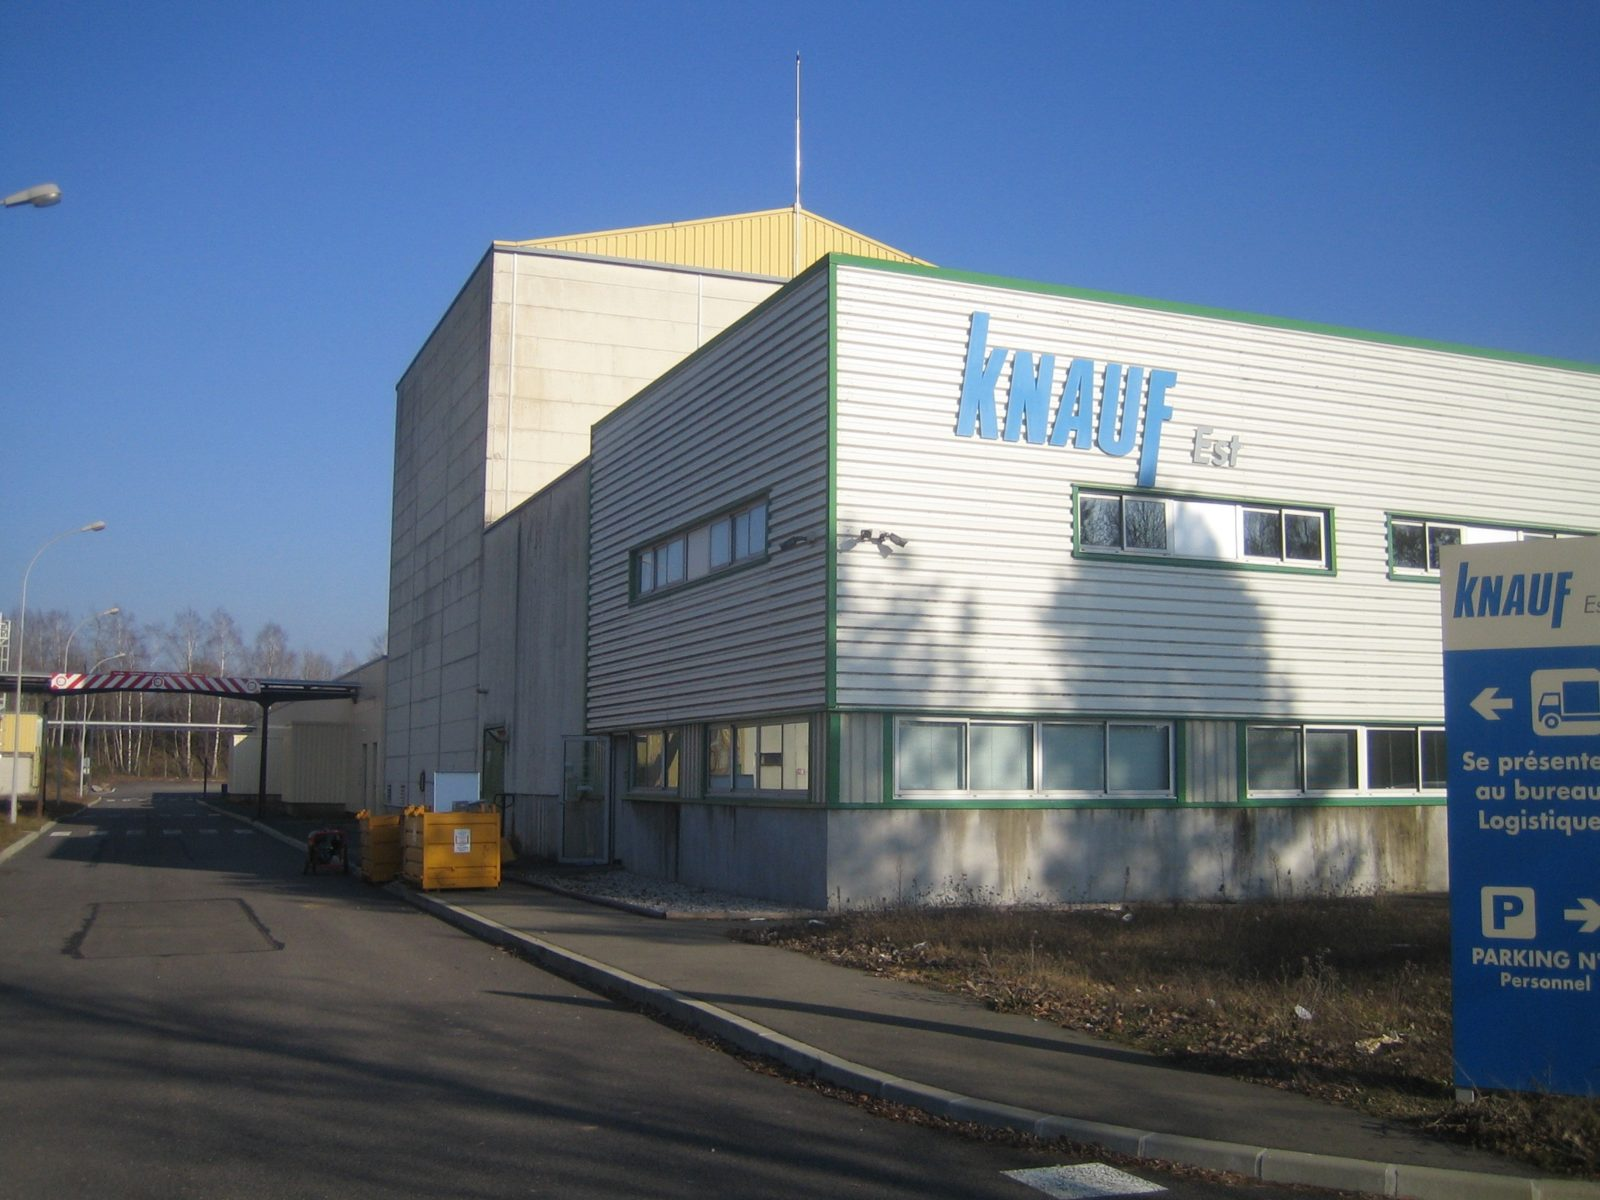 Photo Bâtiment Knauf